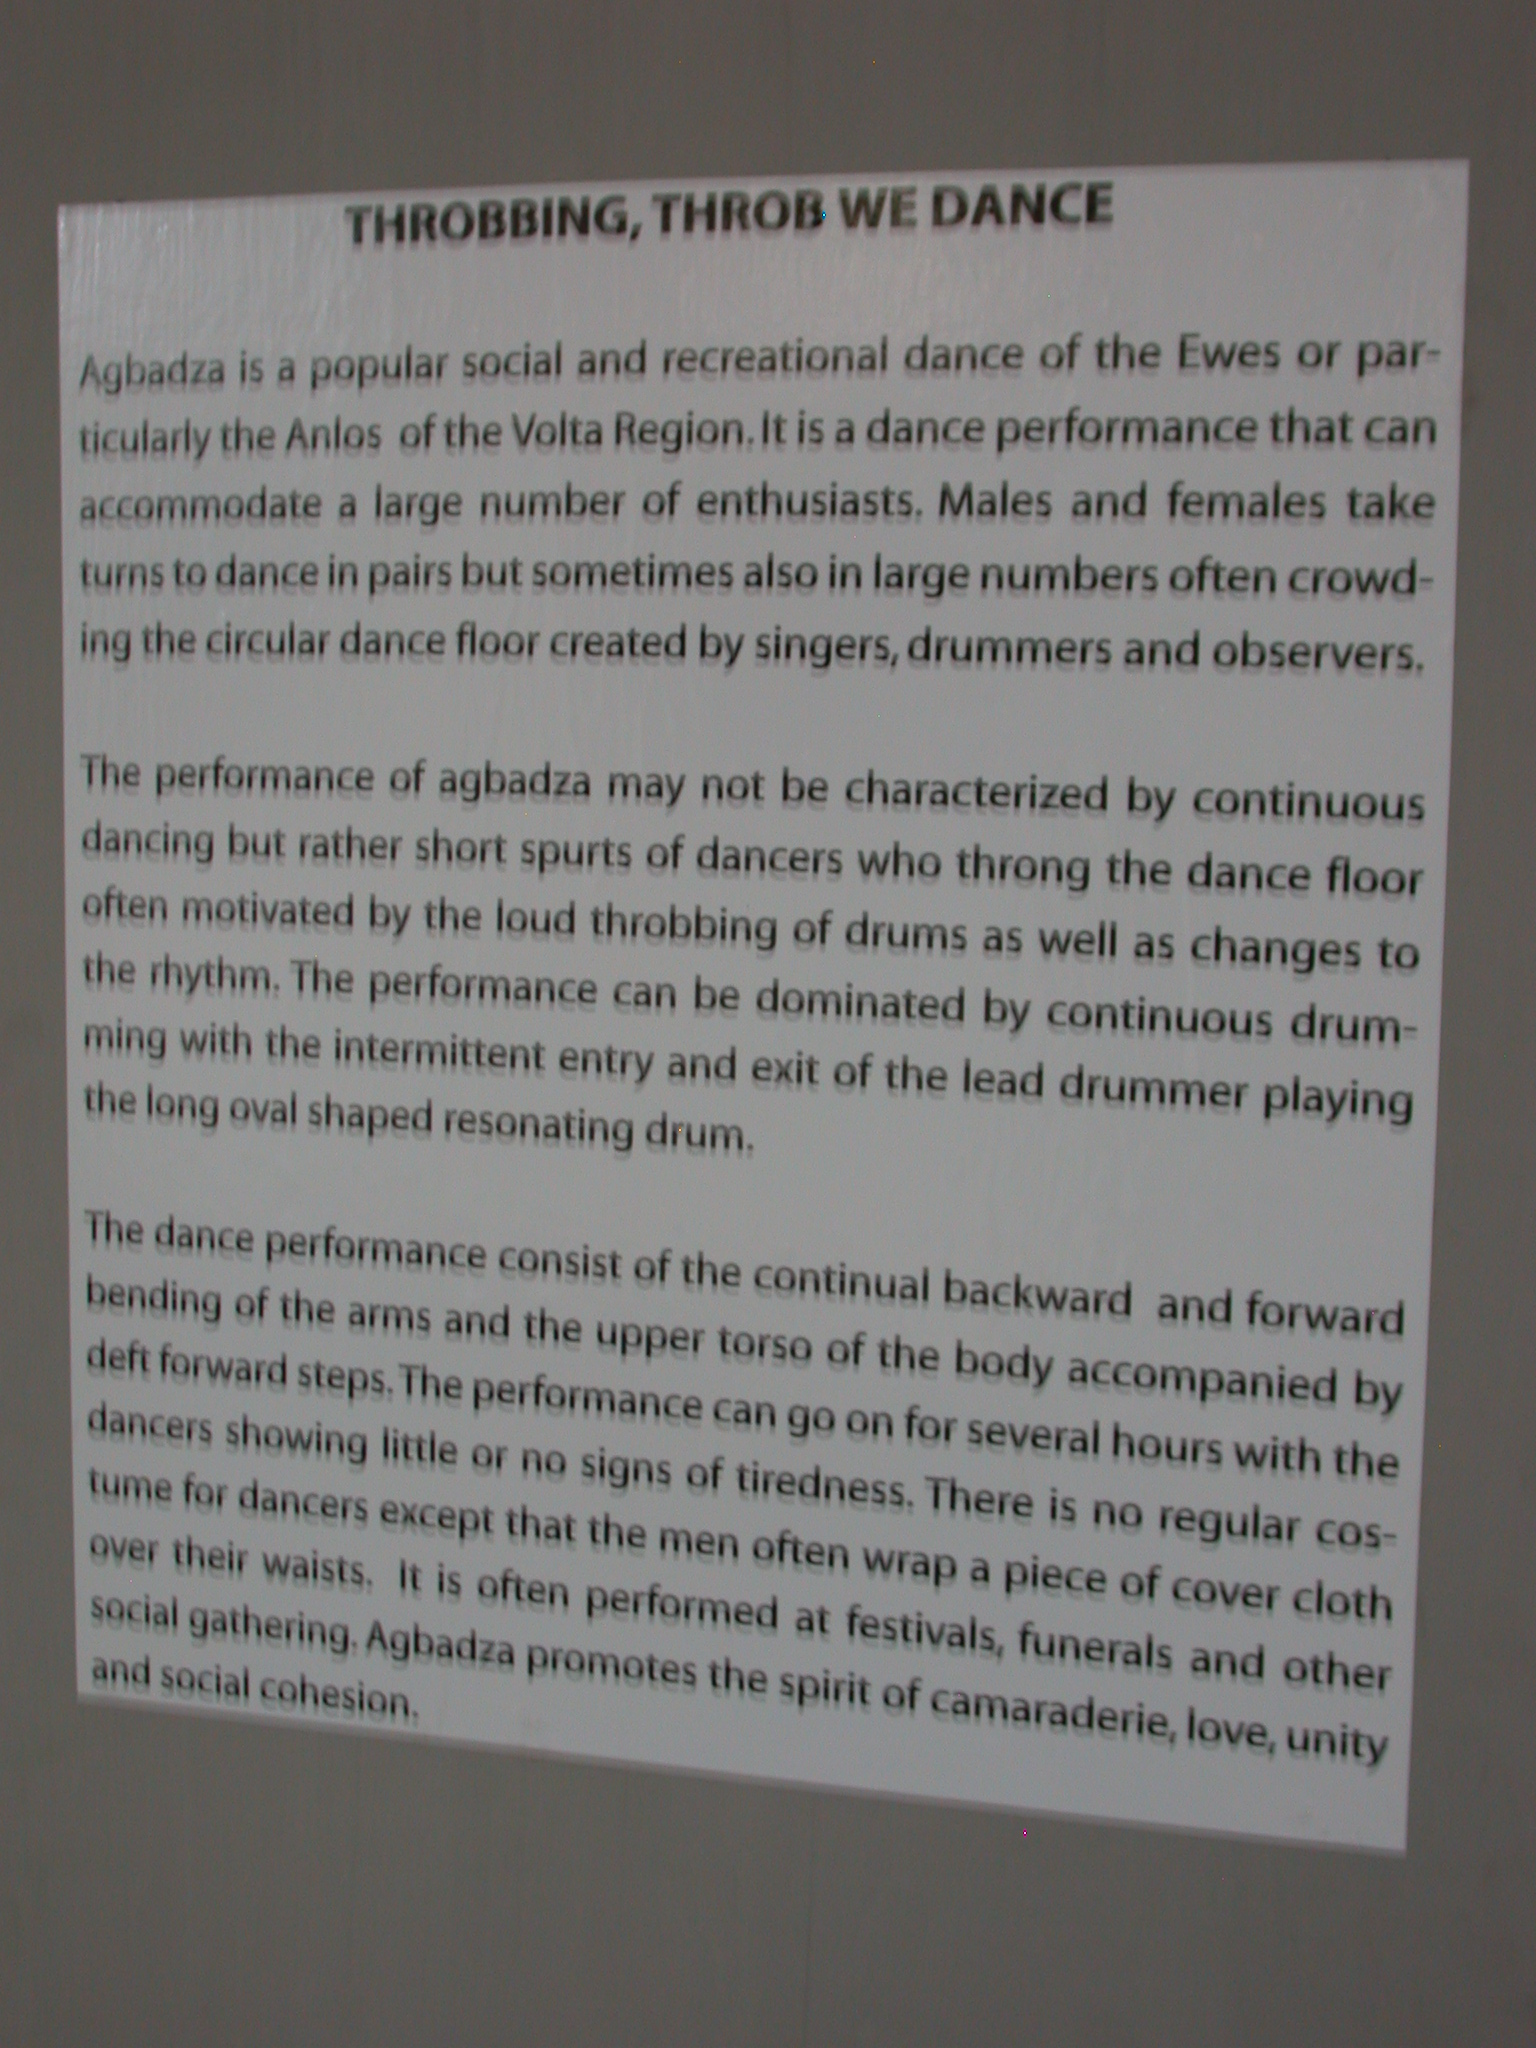 Description of Agbadza Dance, National Museum, Accra, Ghana